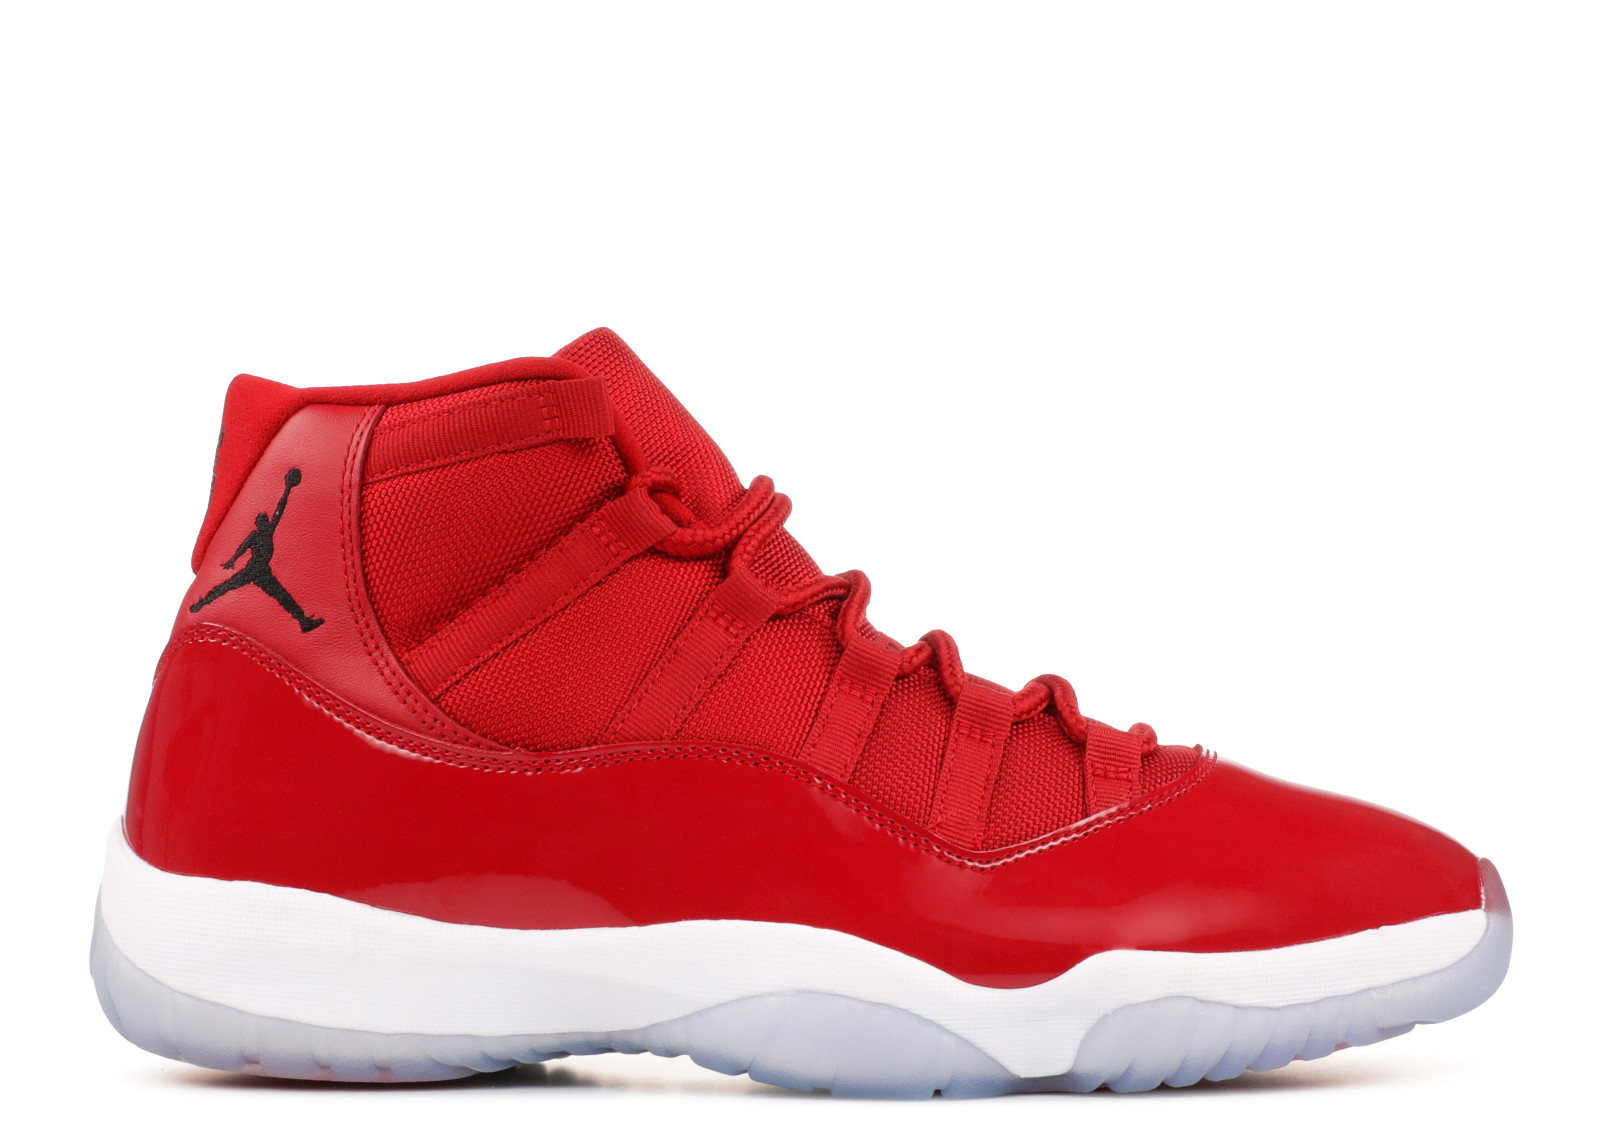 Air Jordan 11 Retro Win Like '96